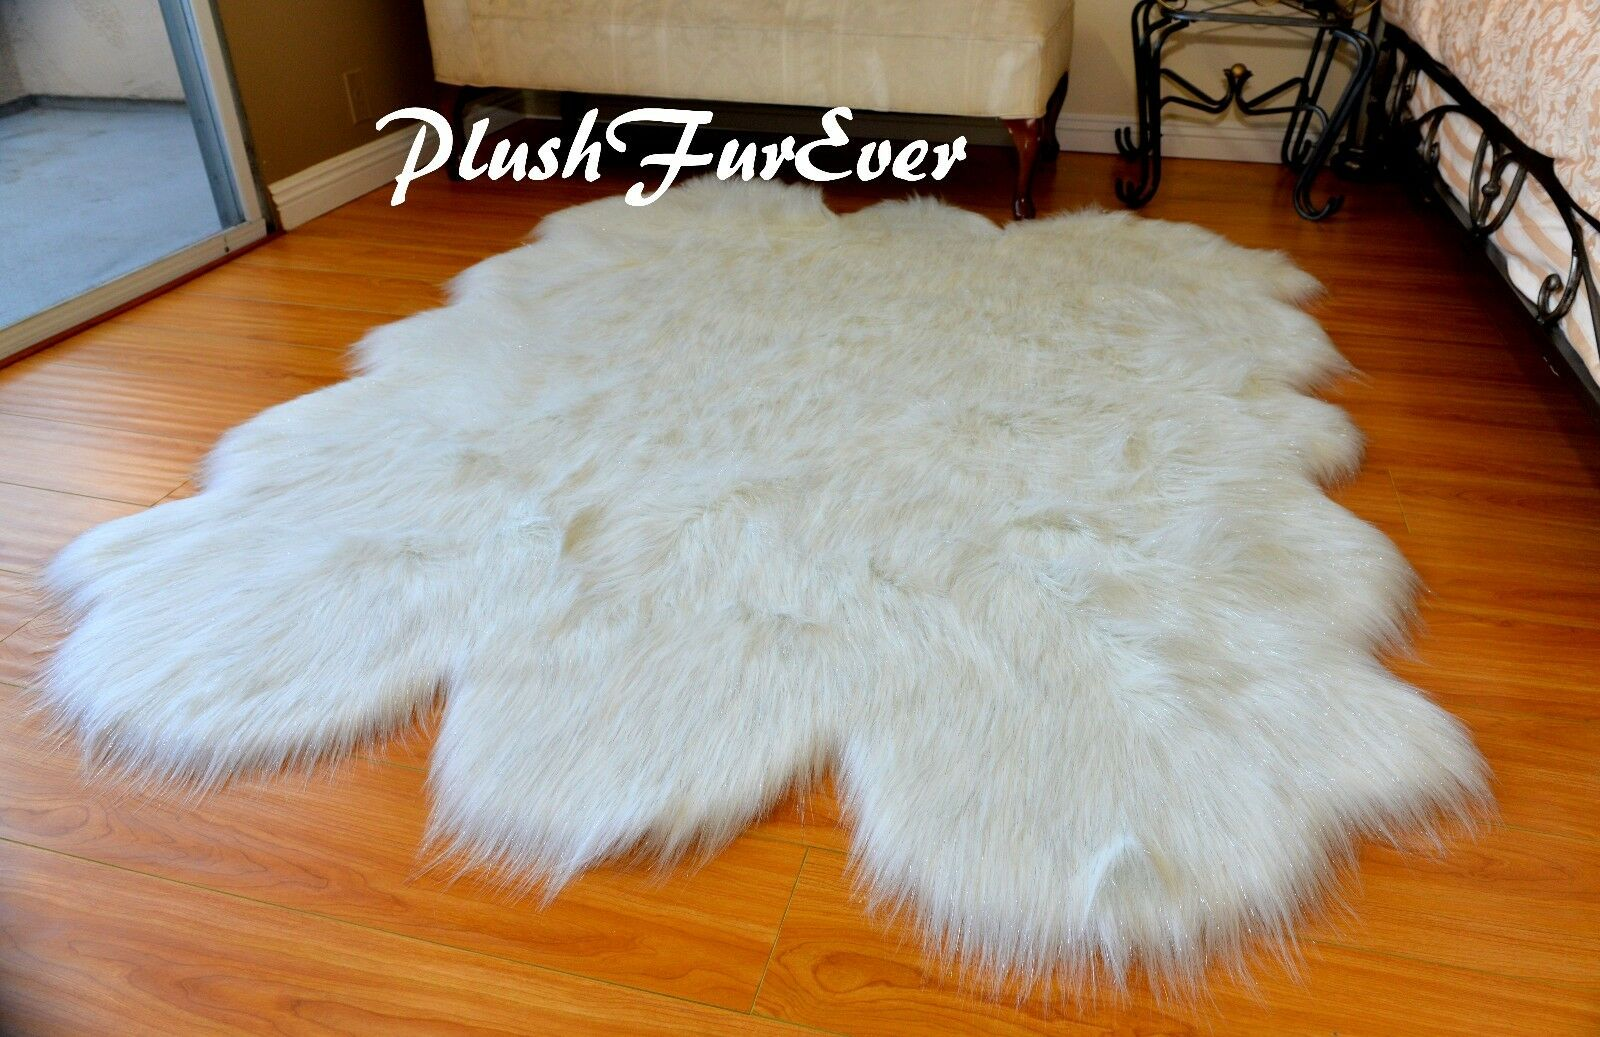 60 x 72 Weiß Sparkle Tinsel Faux Fur Fur Fur Sheepskin Sixto Pelts Plush Furry Area Rug d04885